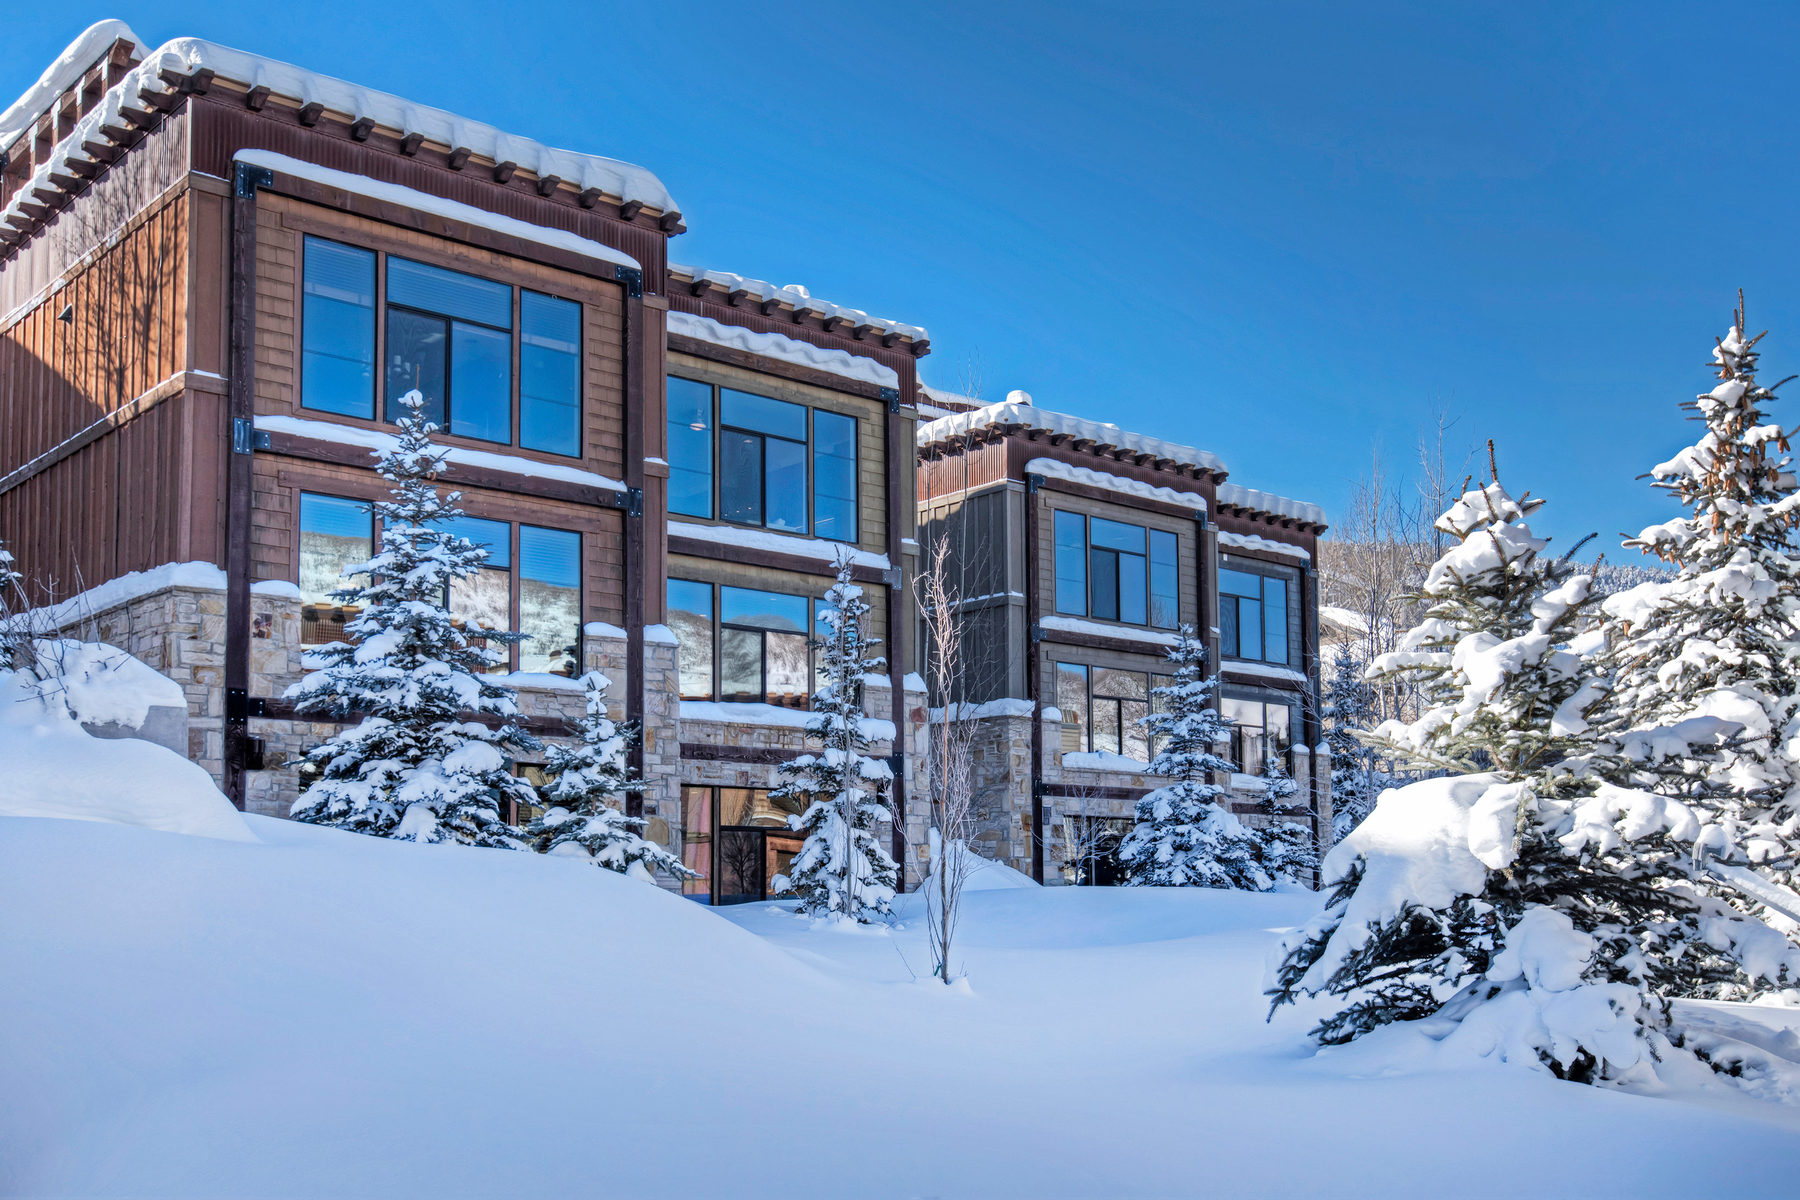 Townhouse for Sale at Recently Remodeled Deer Valley Condo 569 Deer Valley Loop Rd #7, Park City, Utah, 84060 United States